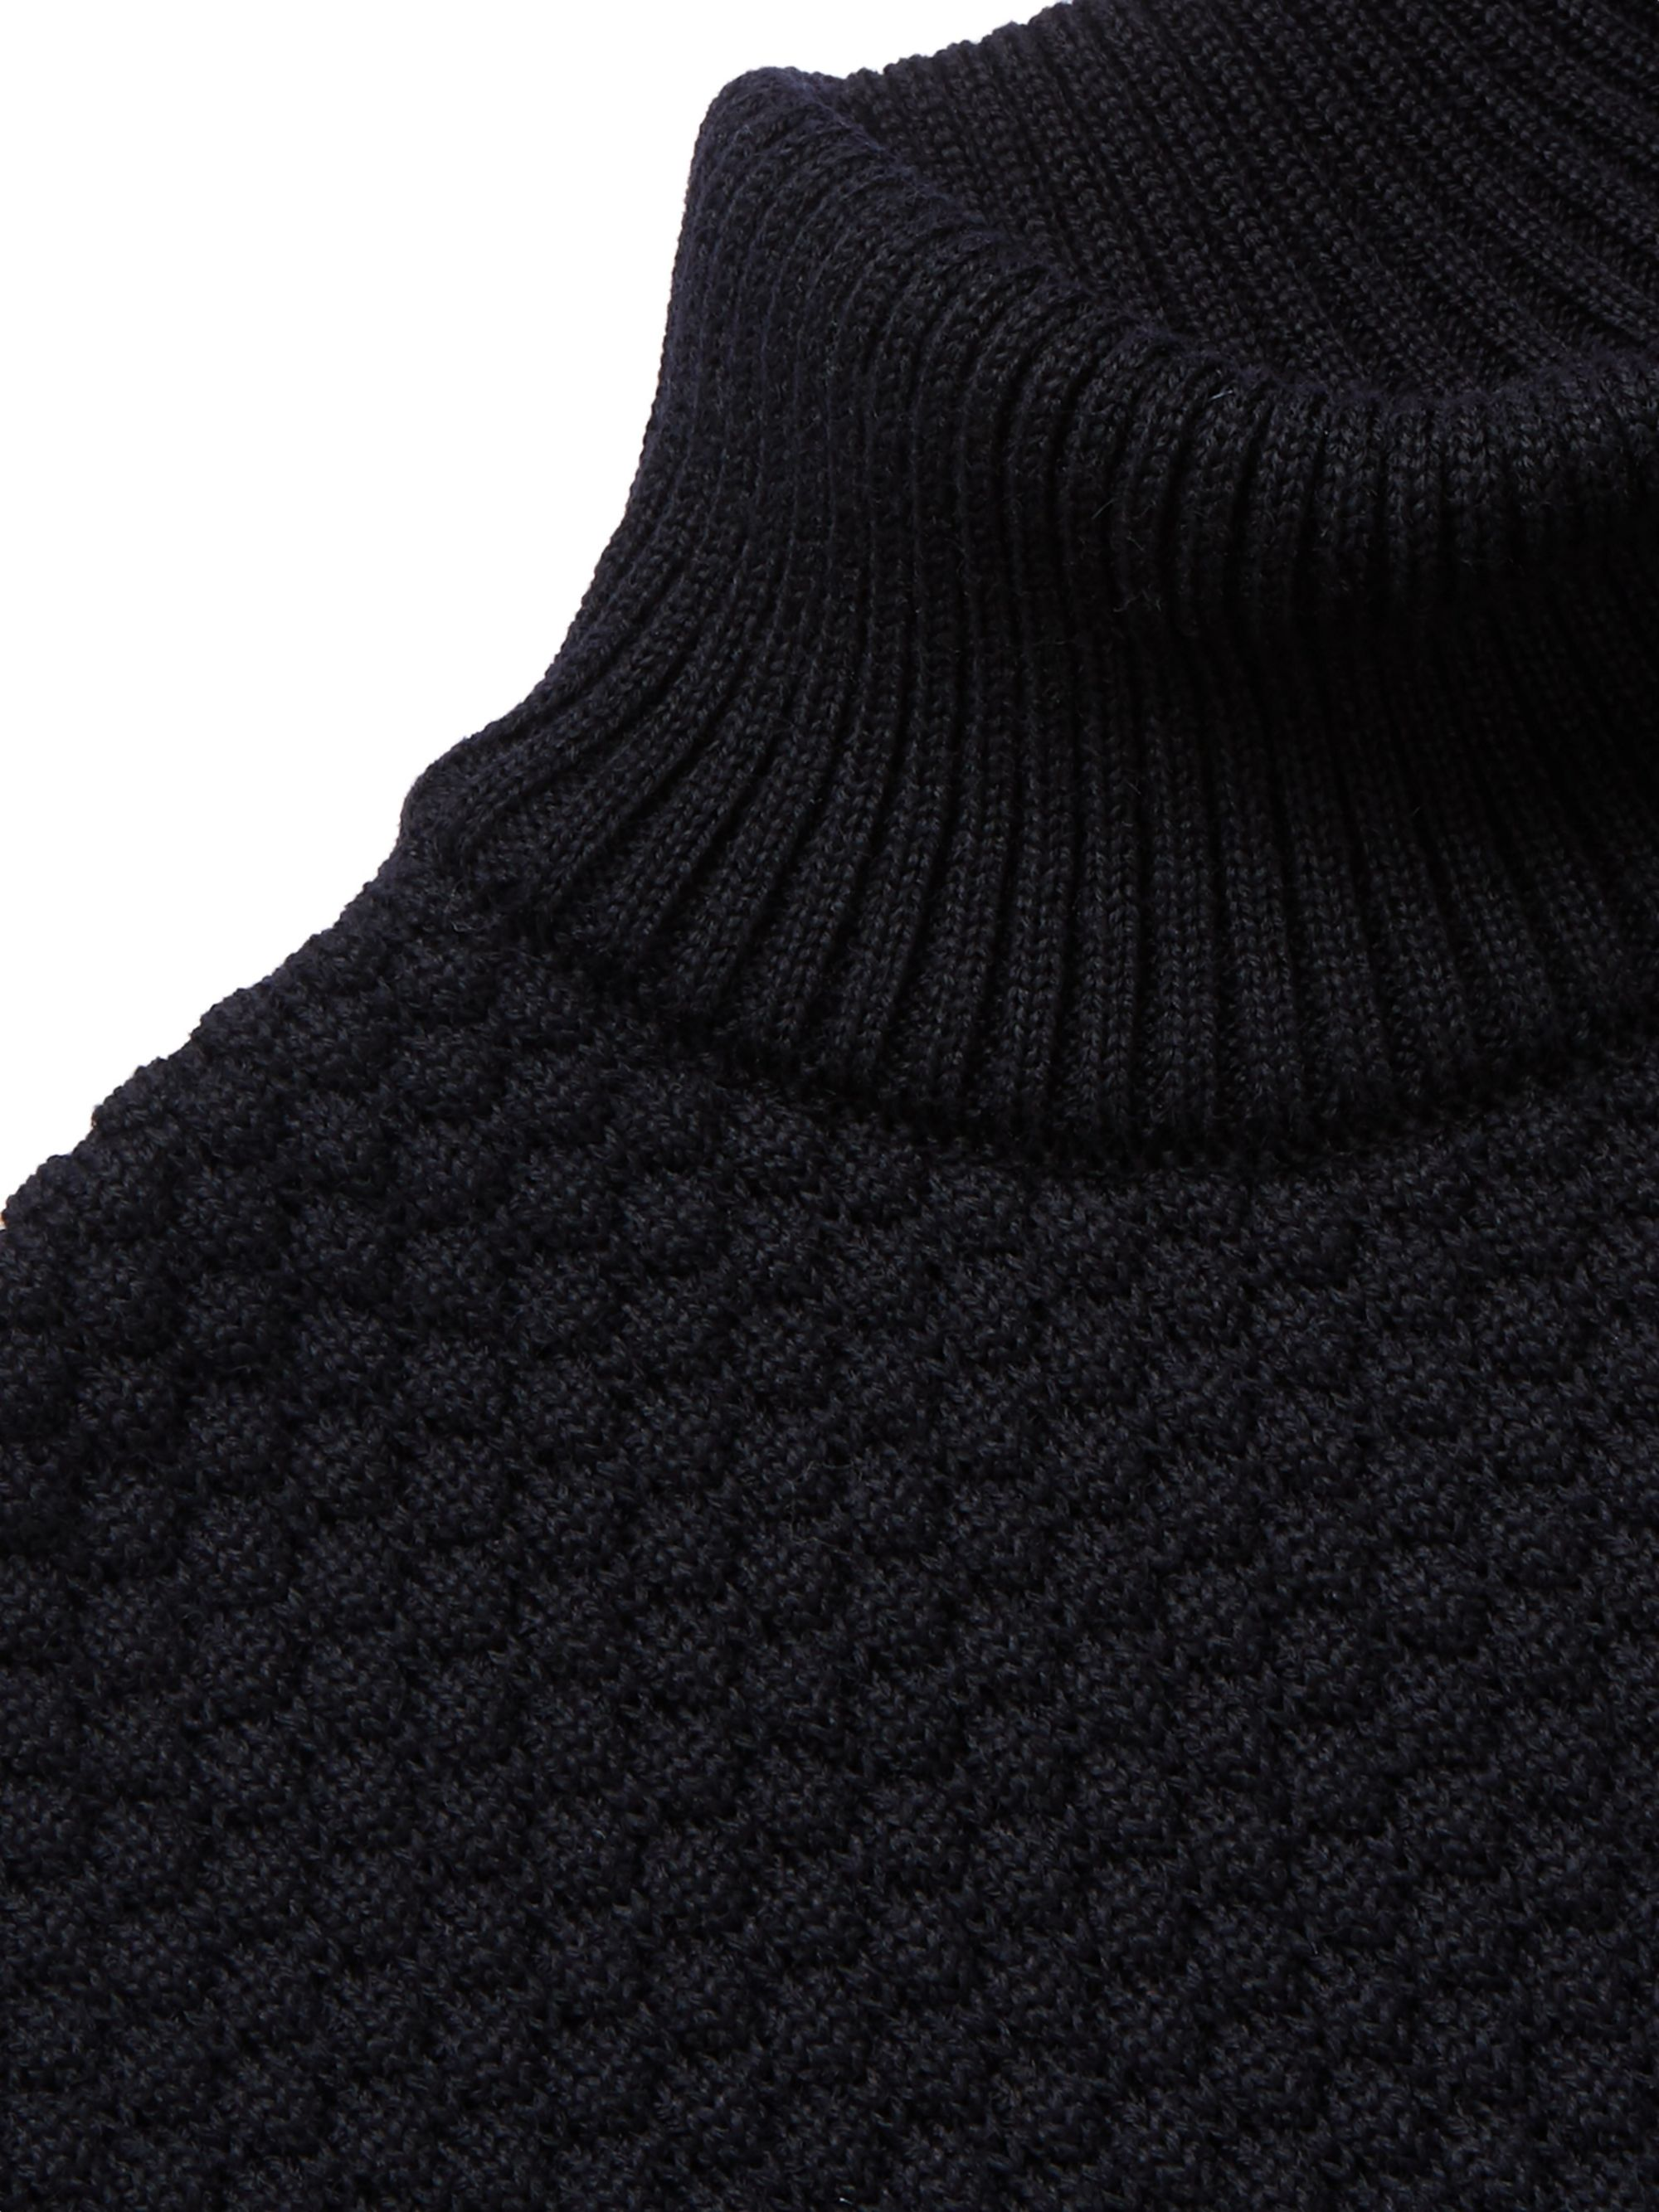 S.N.S. Herning Mediator Virgin Wool Mock-Neck Sweater